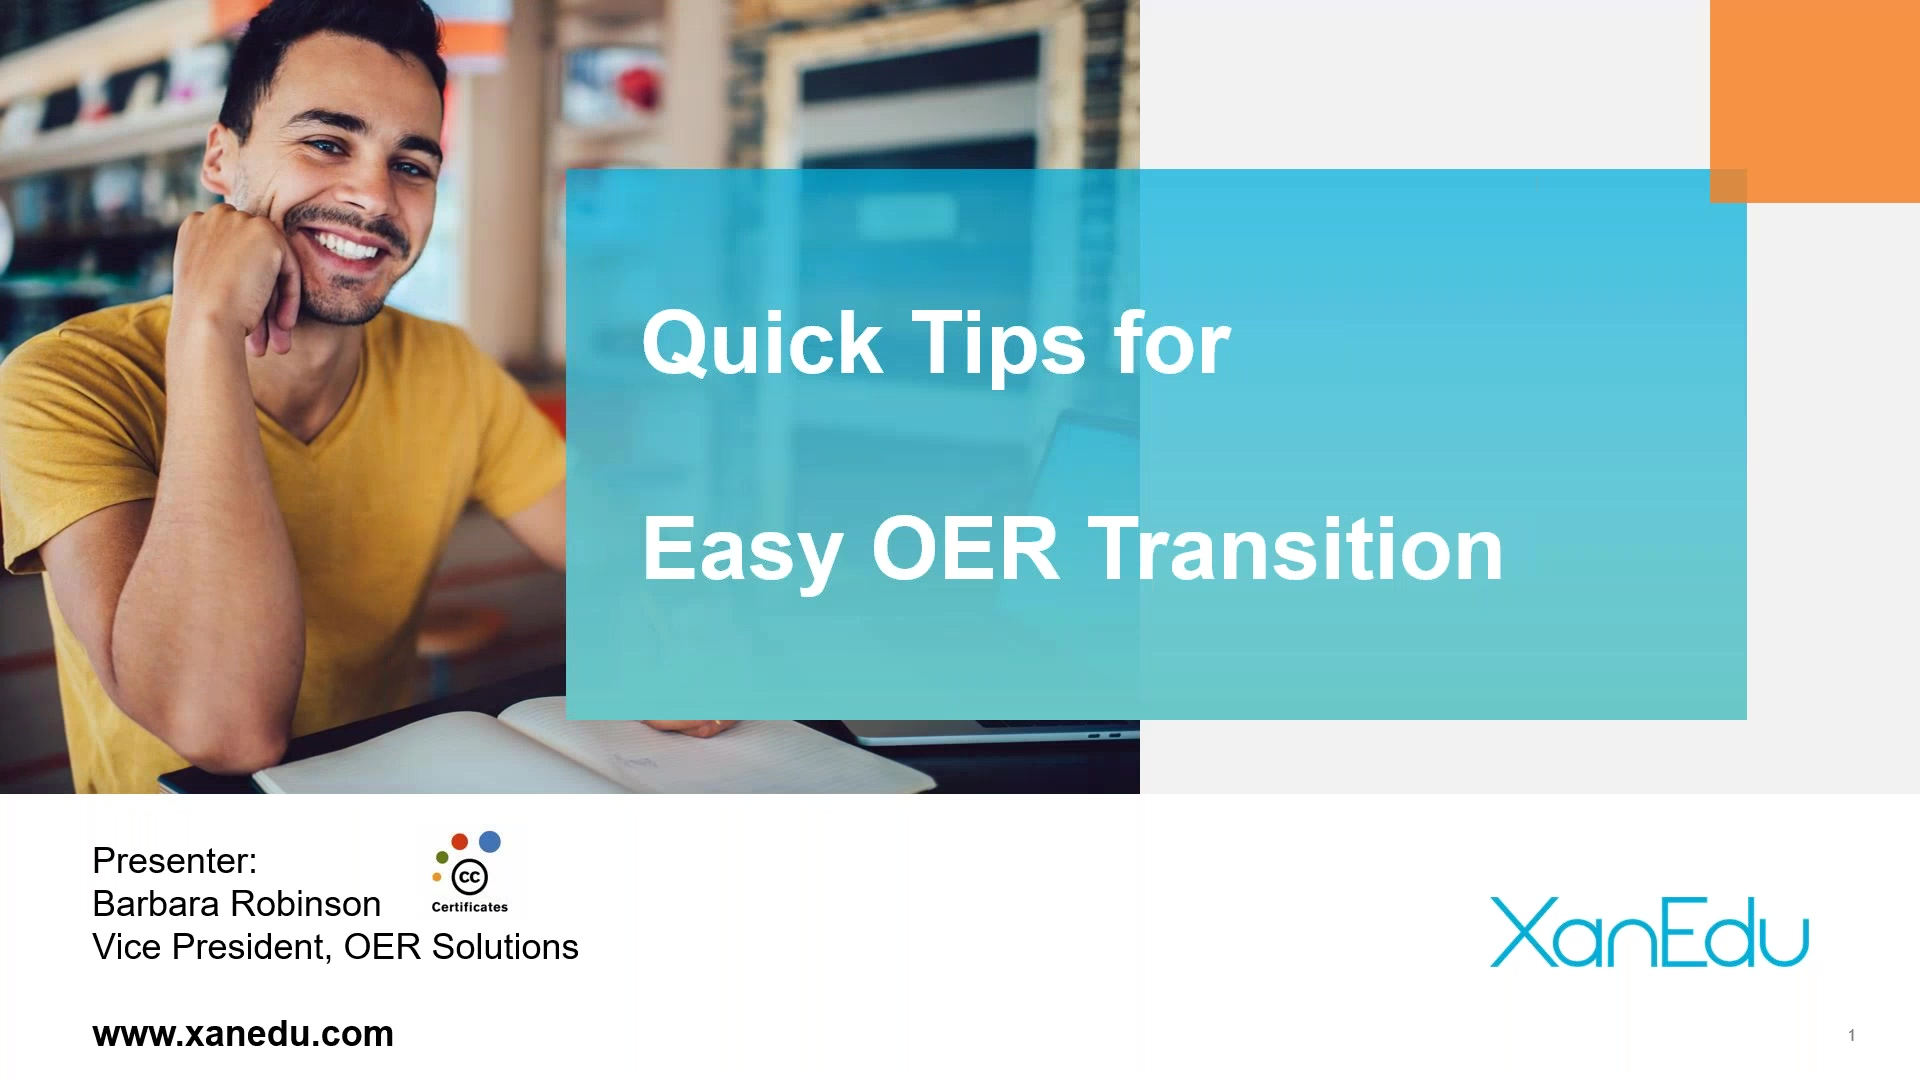 Quick Tips for Easy OER Transition Image